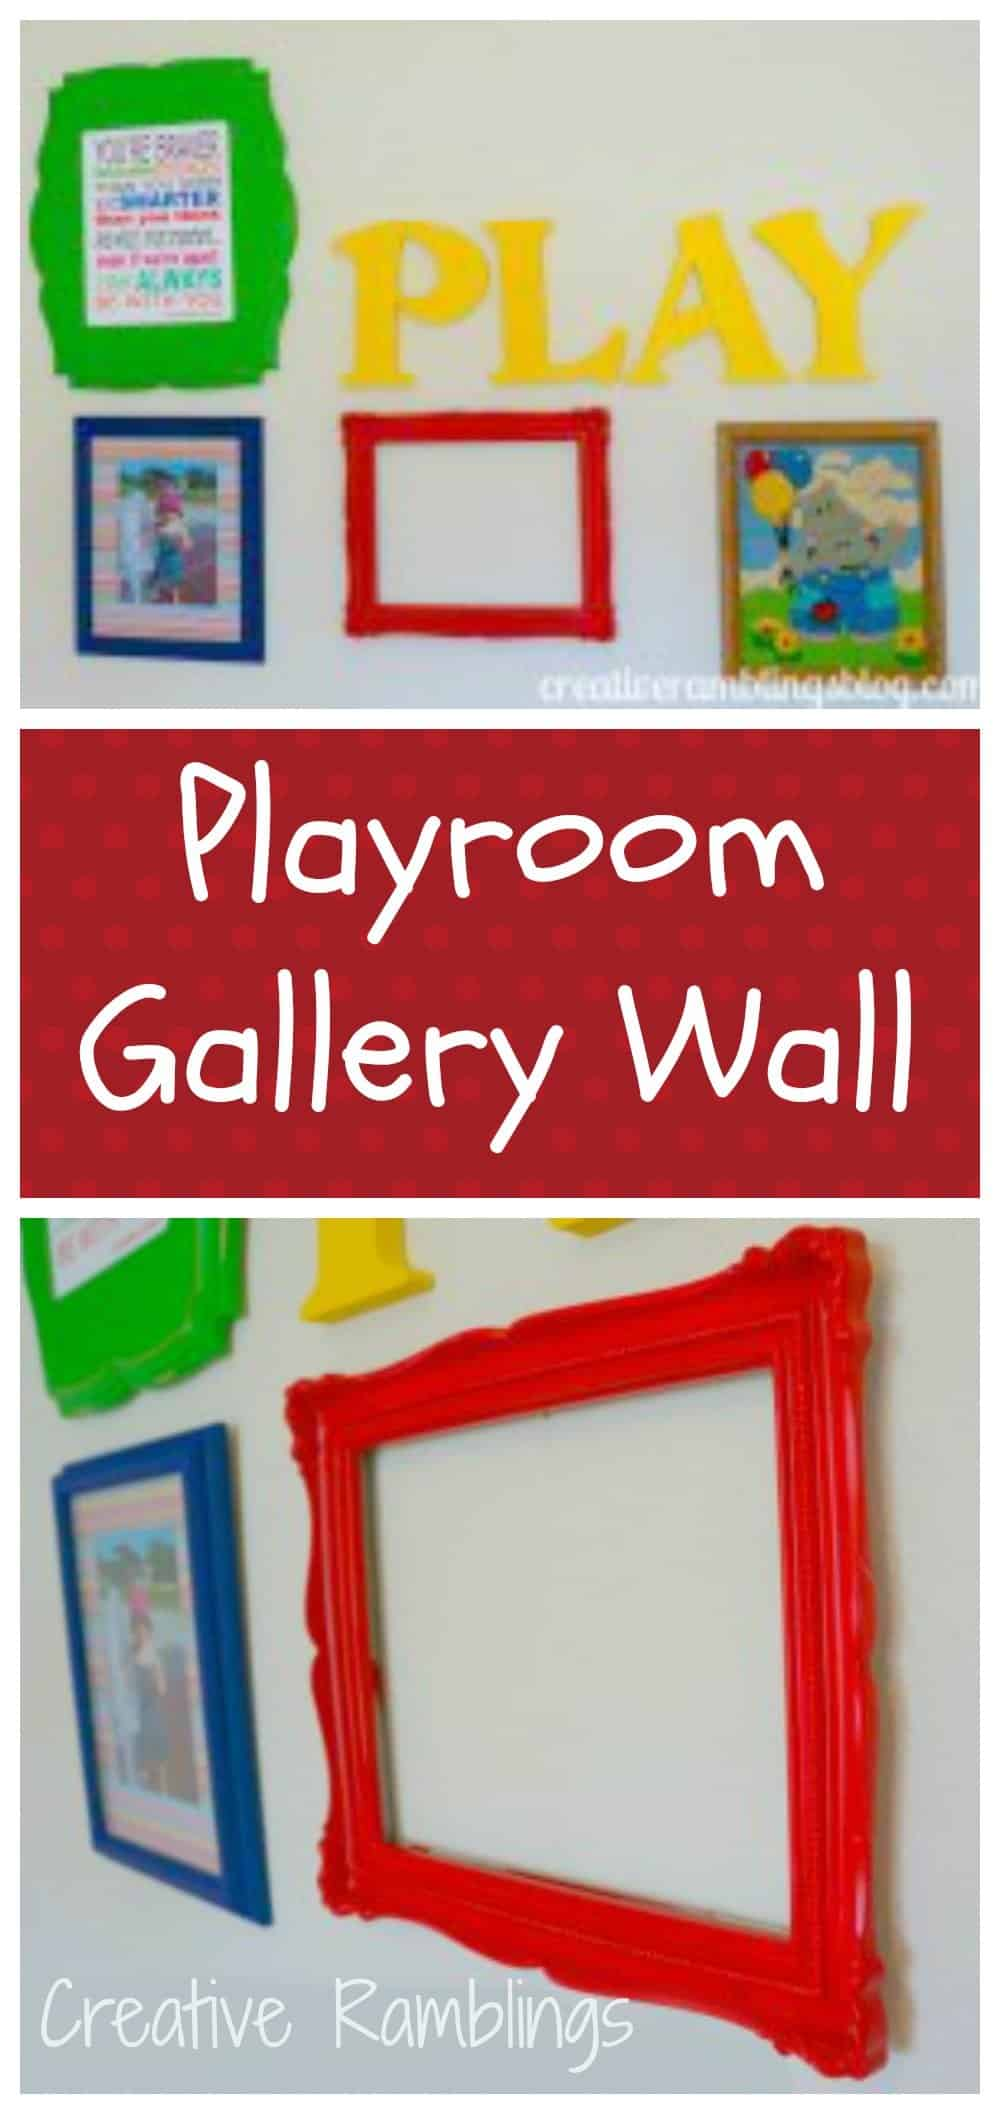 playroom wall art  sc 1 st  Creative Ramblings & Playroom Wall Art - Creative Ramblings